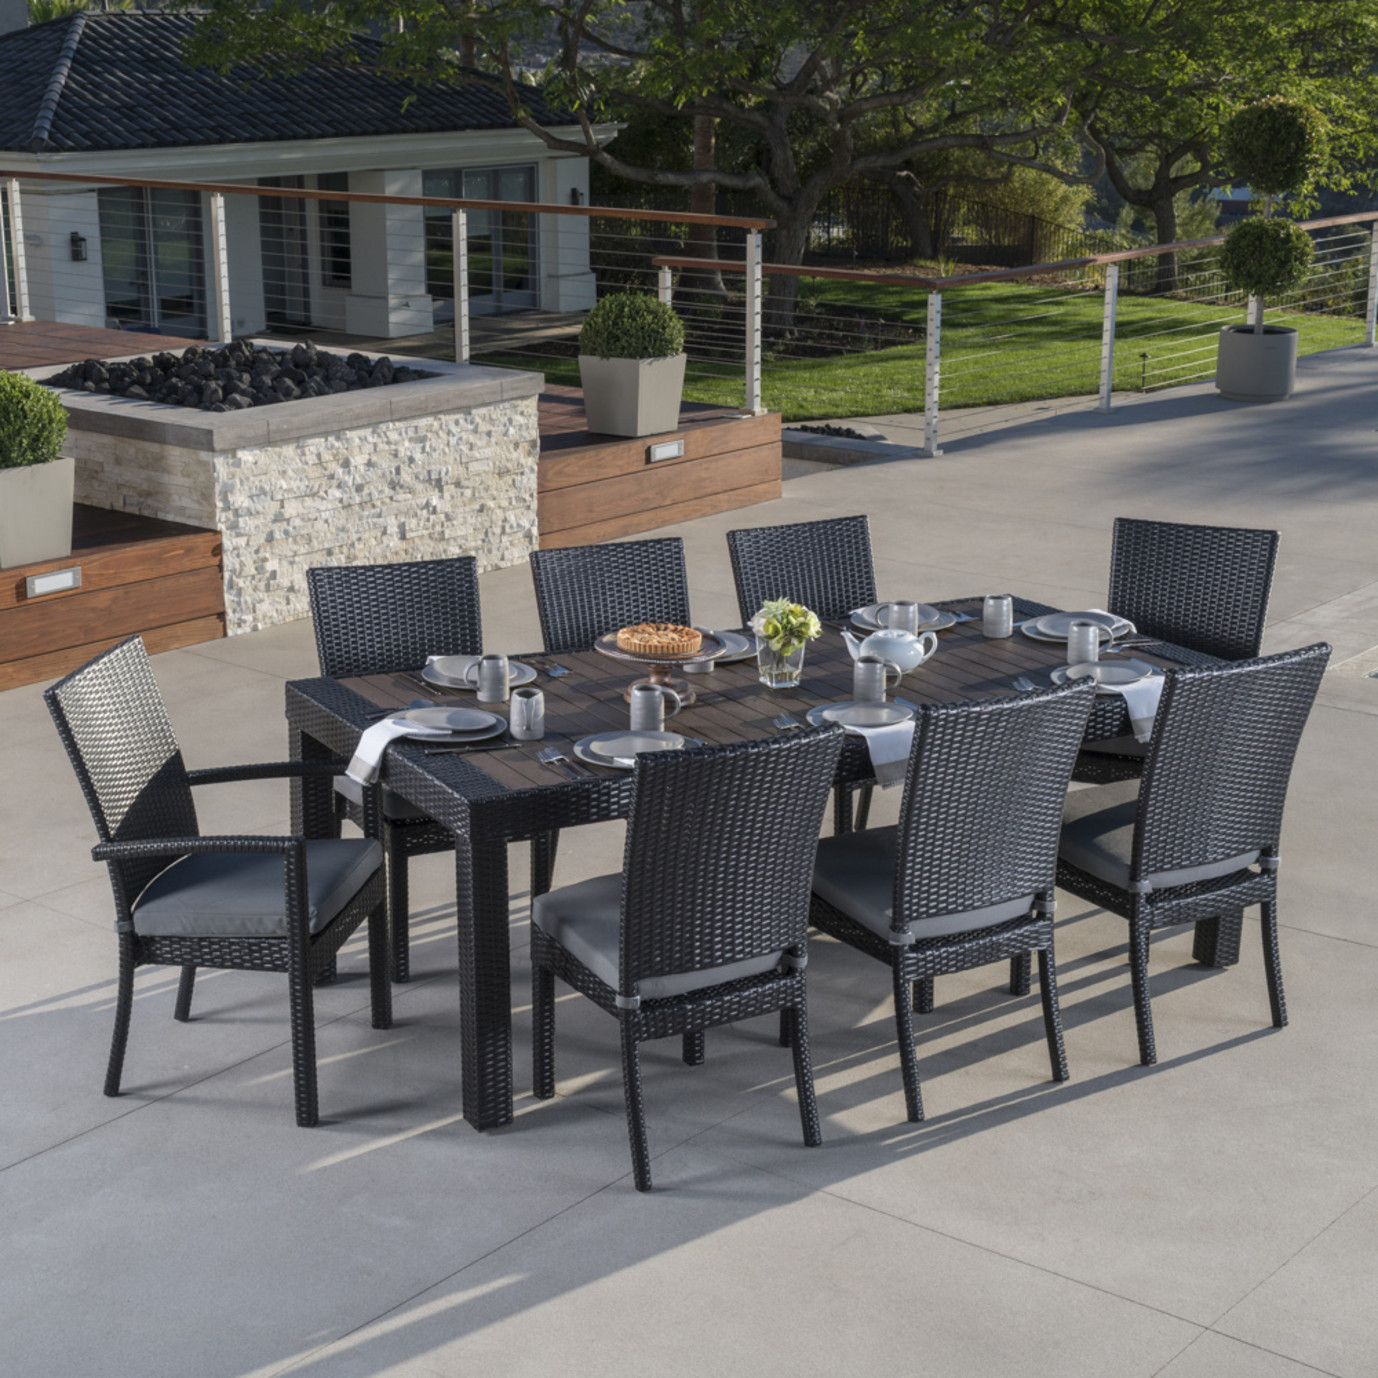 Deco™ 9pc Dining Set - Charcoal Gray